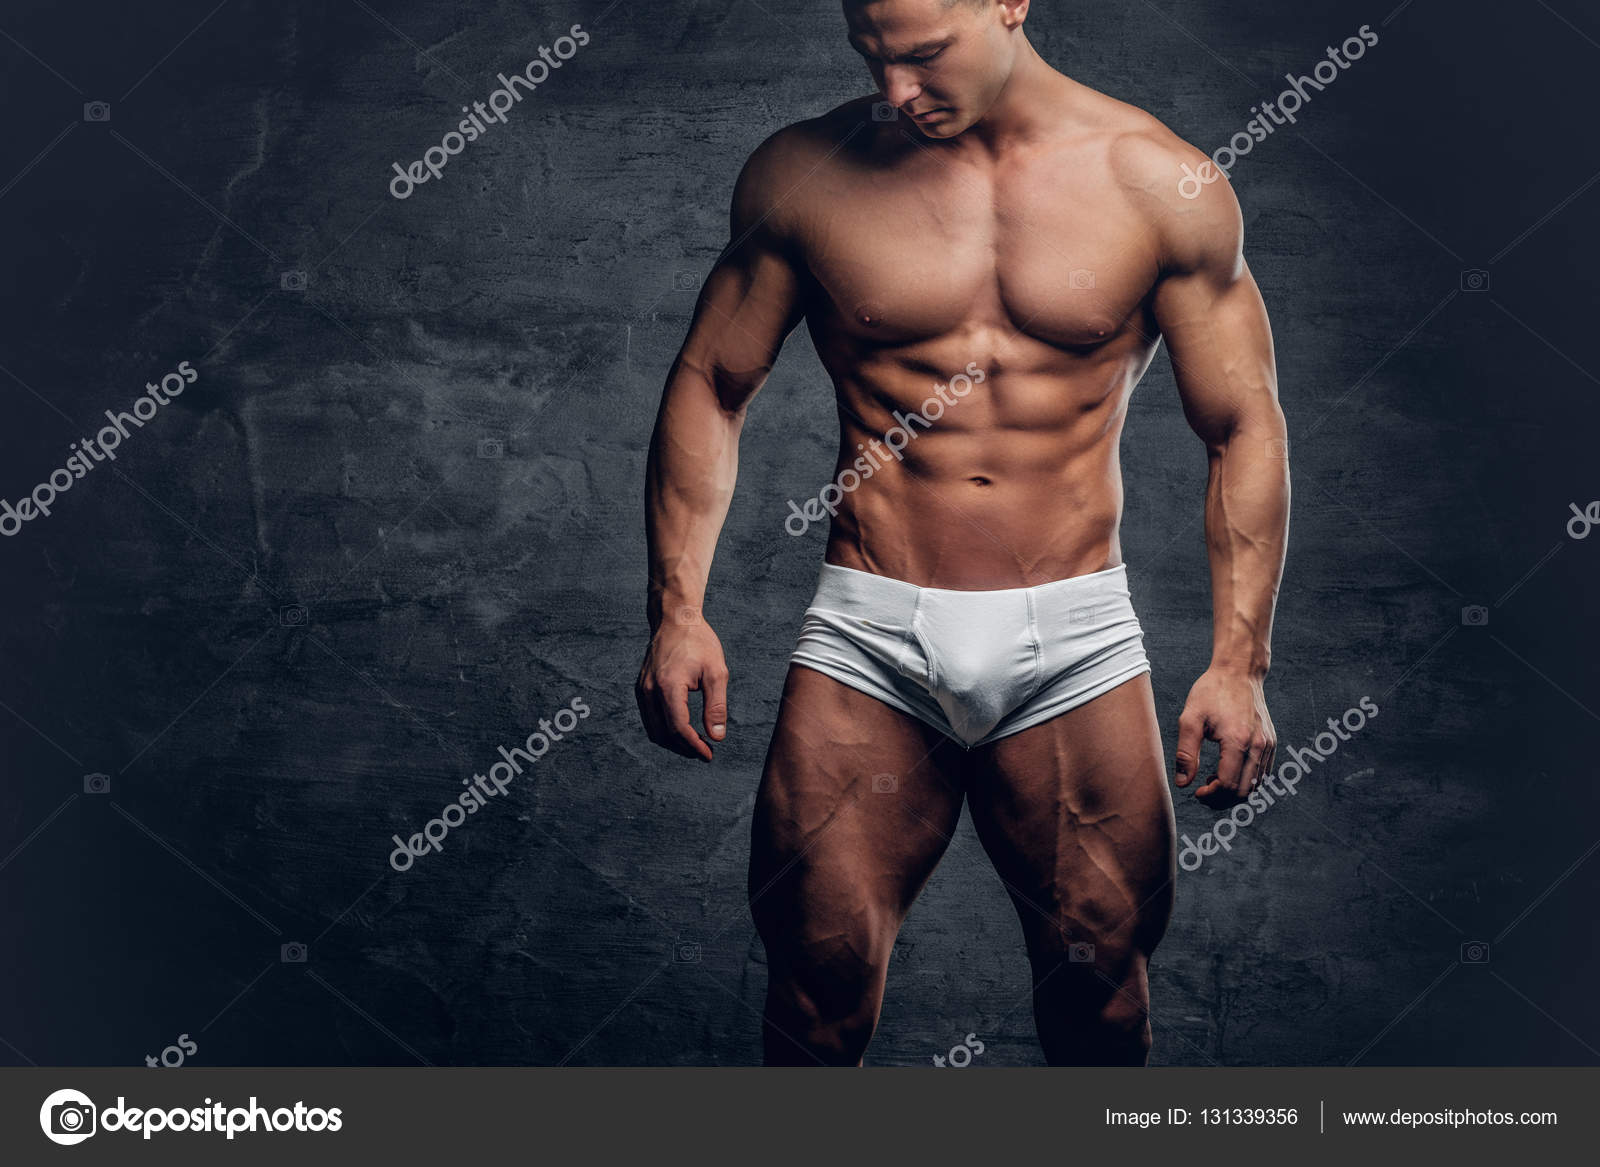 Athletic male galleries 44